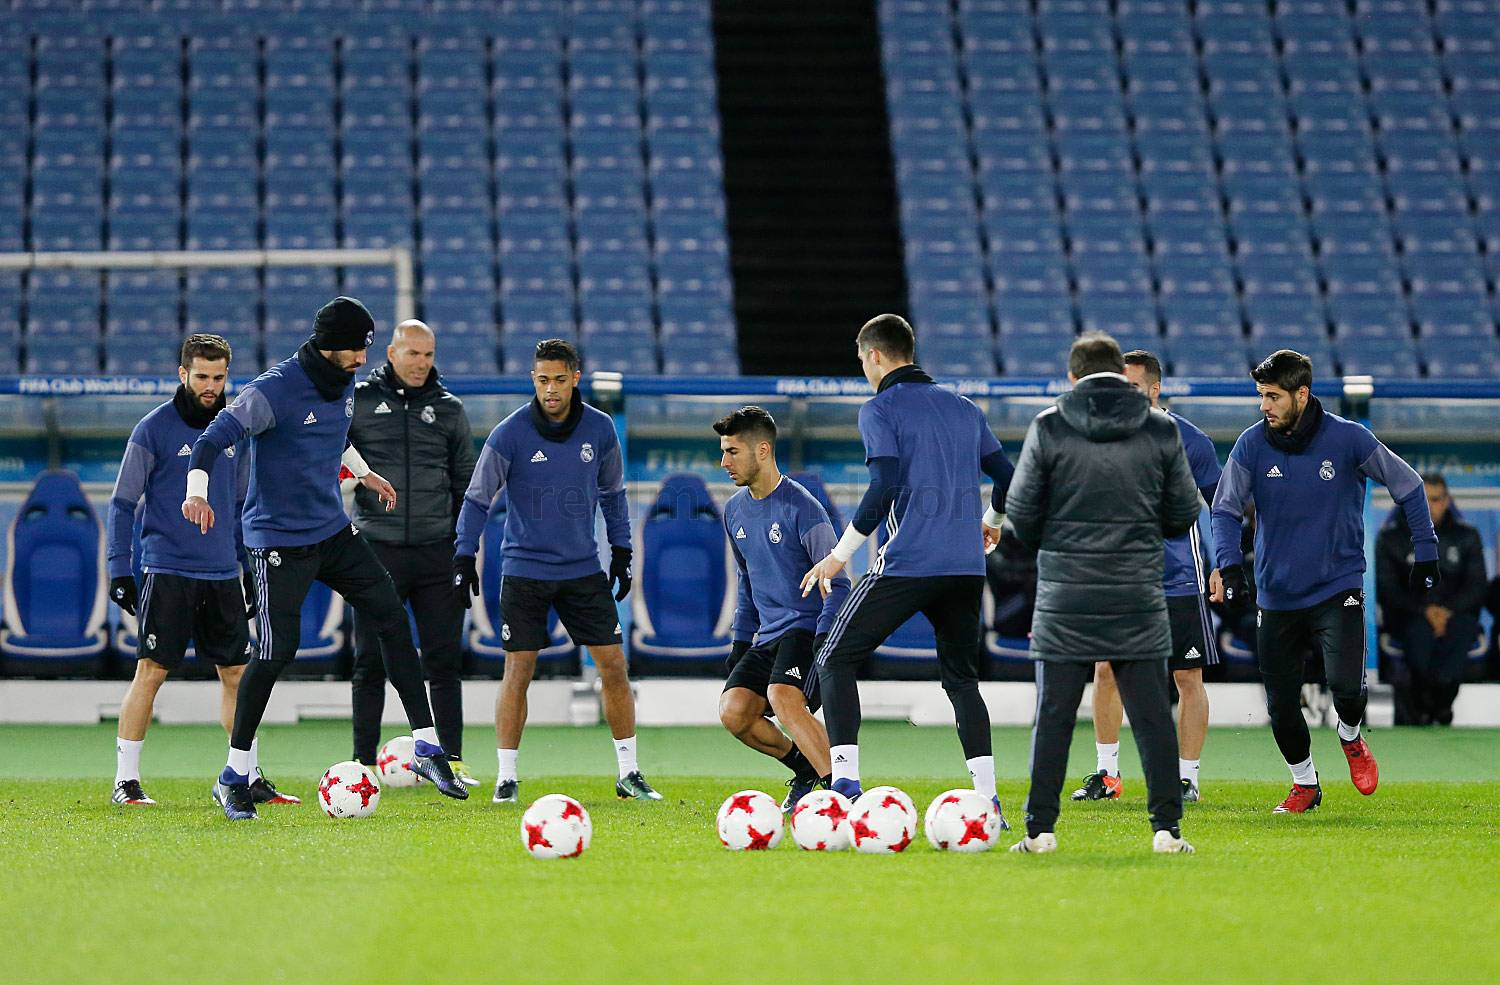 Real Madrid - Entrenamiento del Real Madrid en Yokohama - 14-12-2016